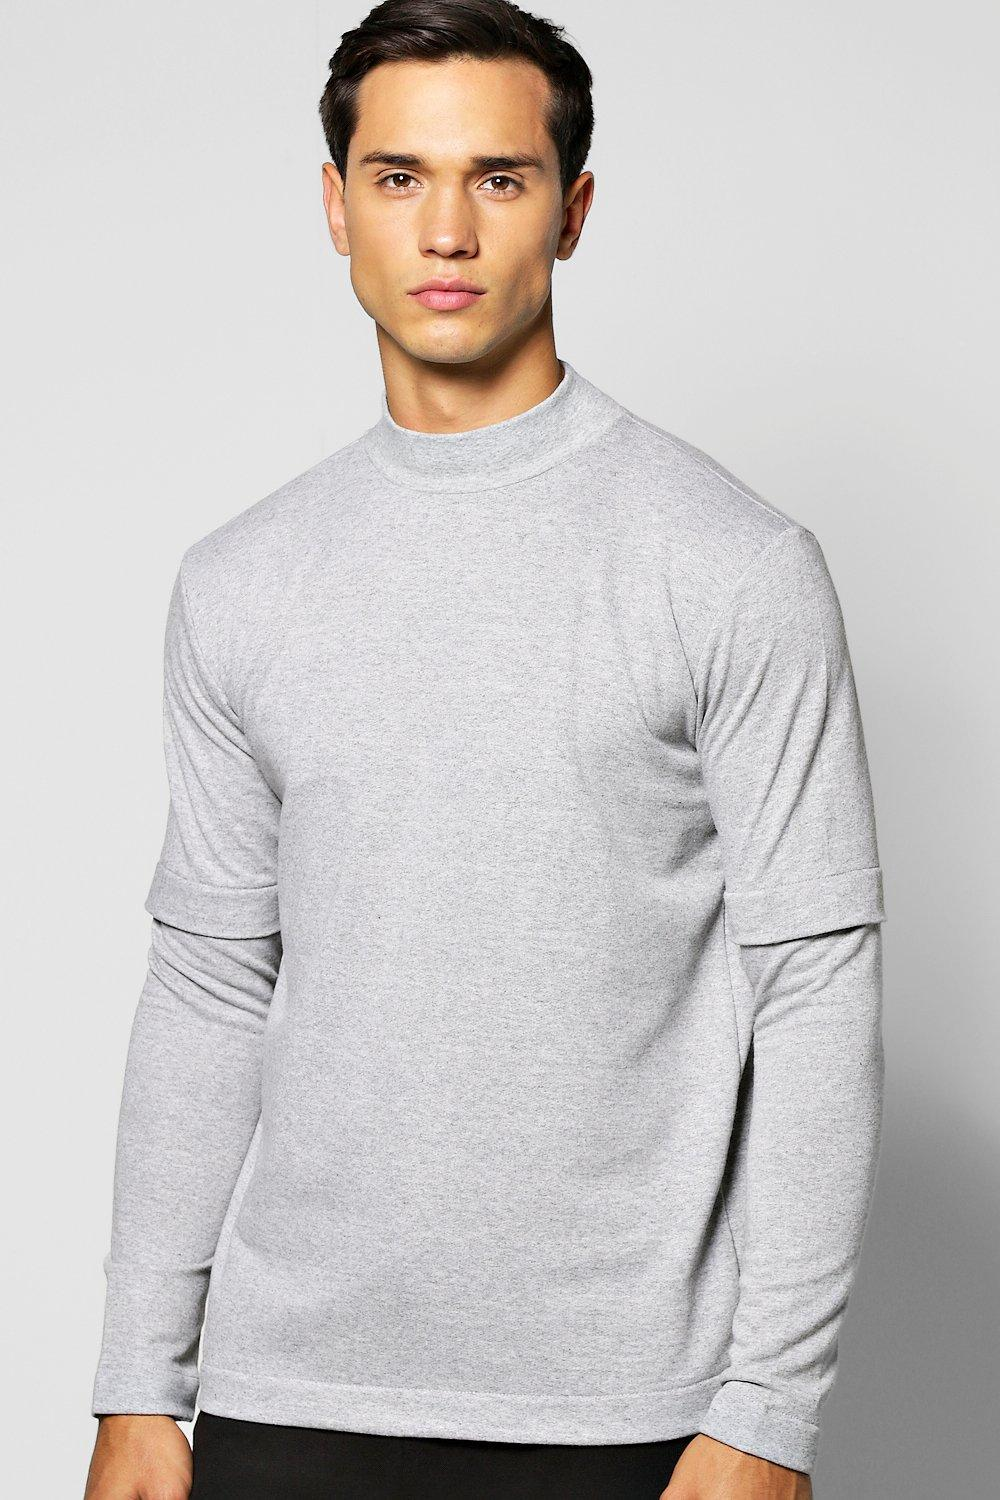 Layer T Shirt With Turtle Neck  grey